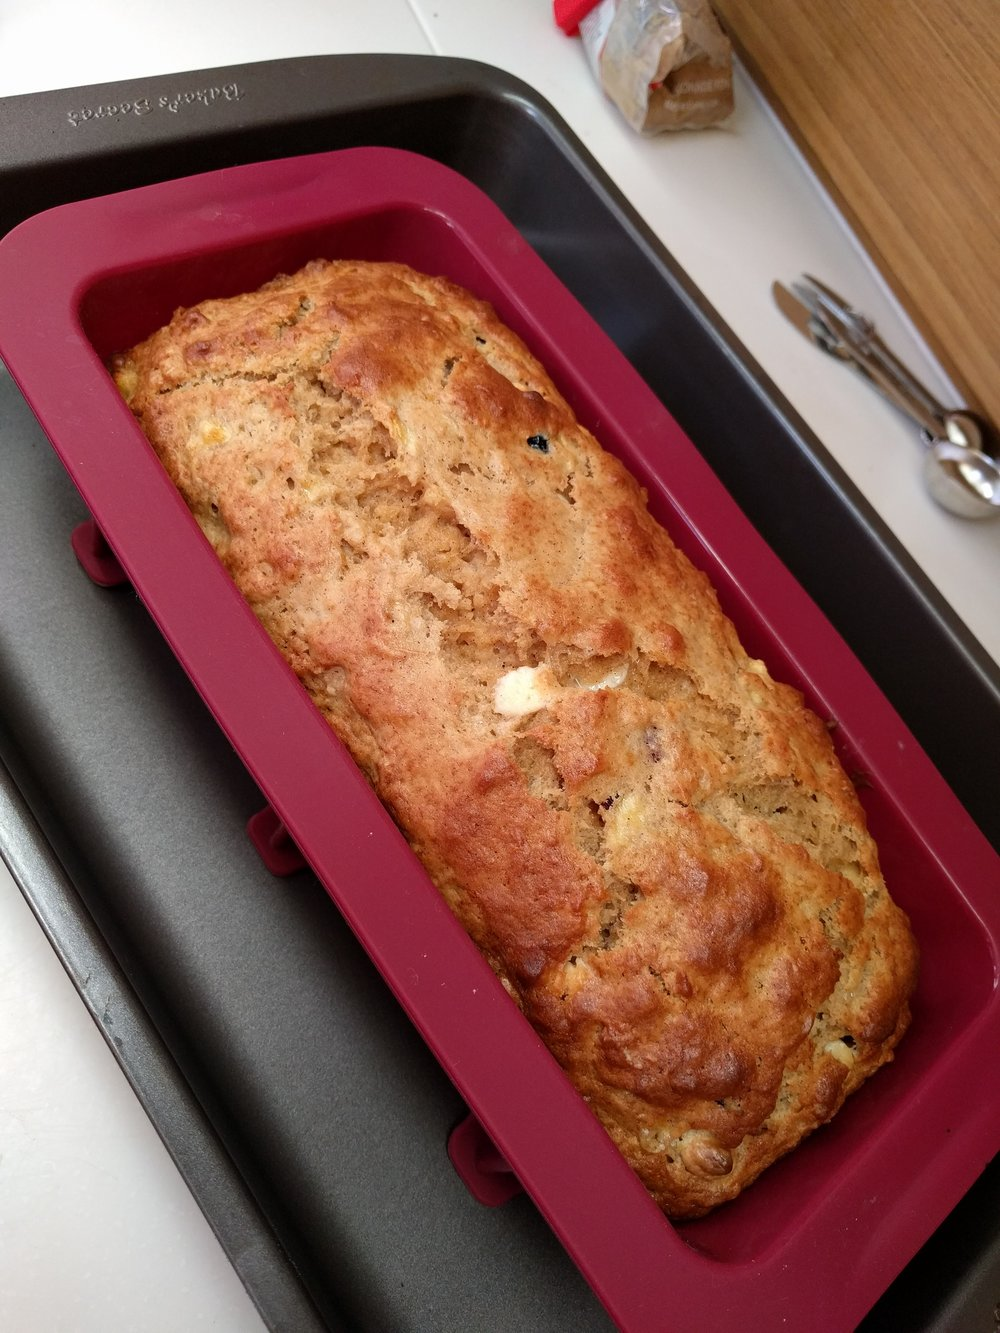 Banana, cranberry, white chocolate bread.